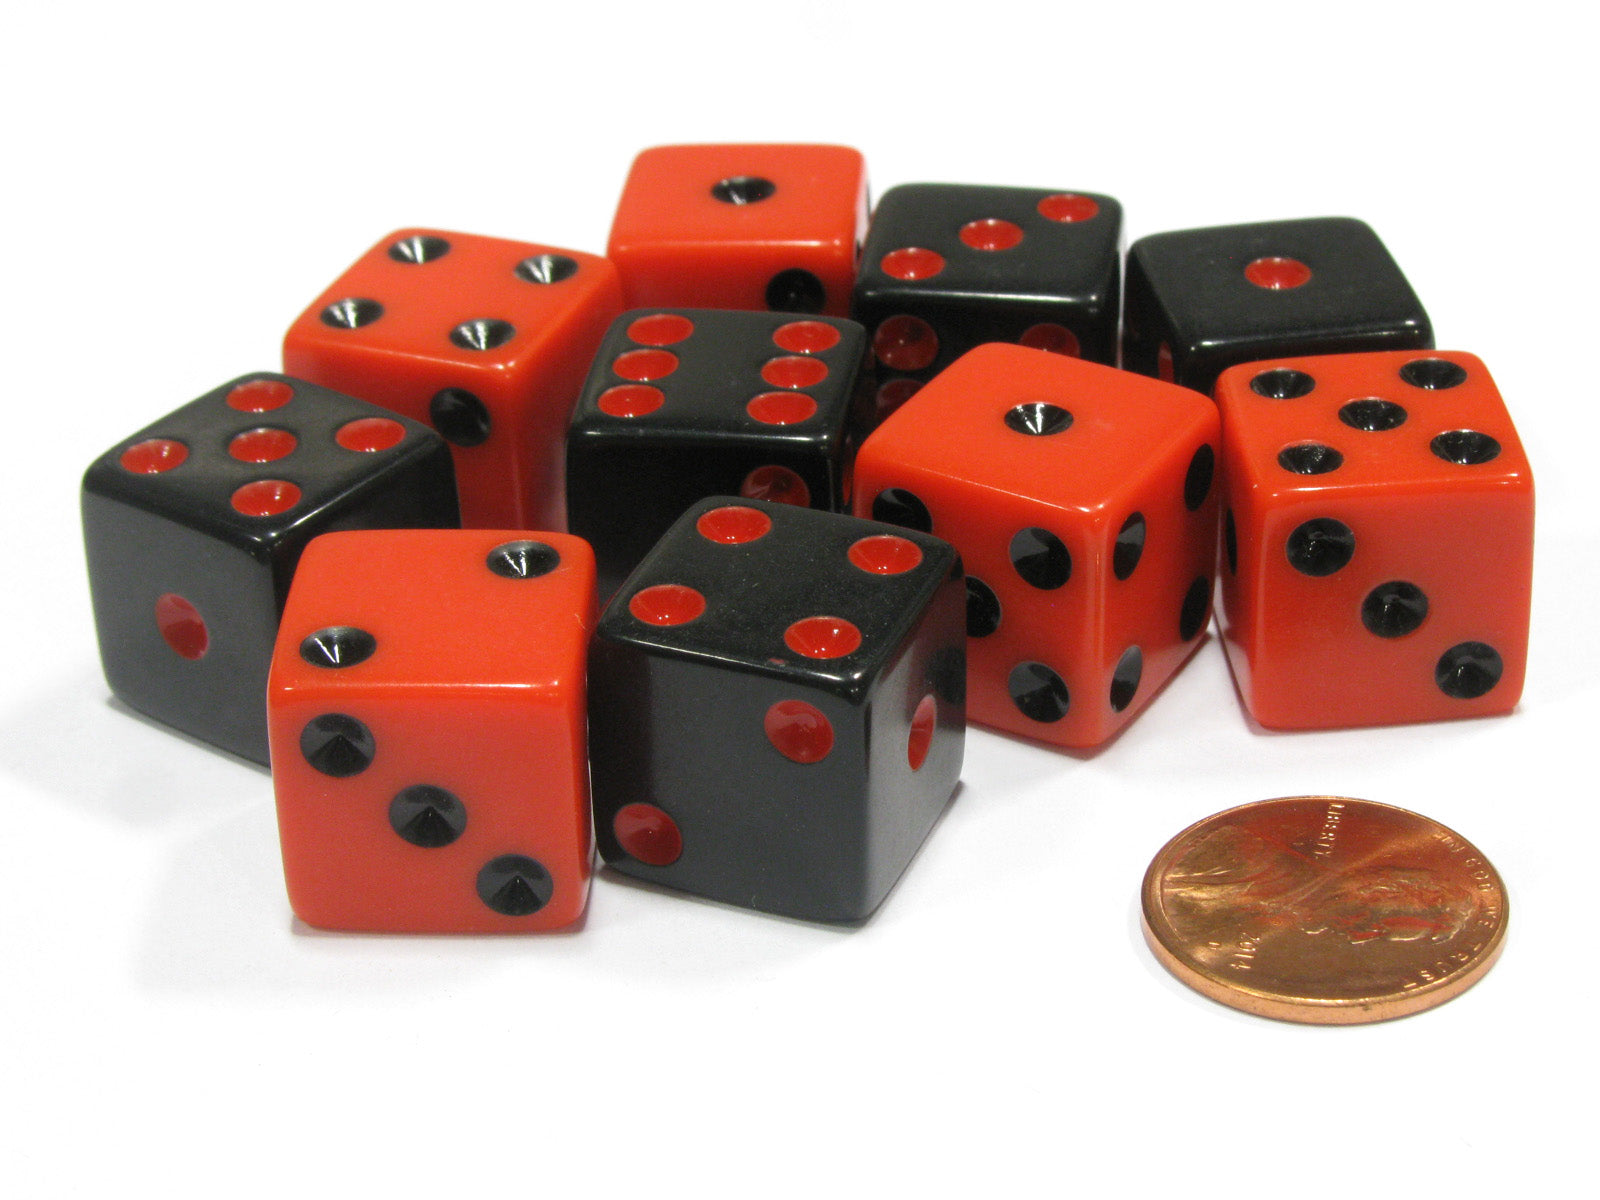 Set of 10 D6 16mm Dice - 5 Each of Black with Red Pip and Red with Black Pip